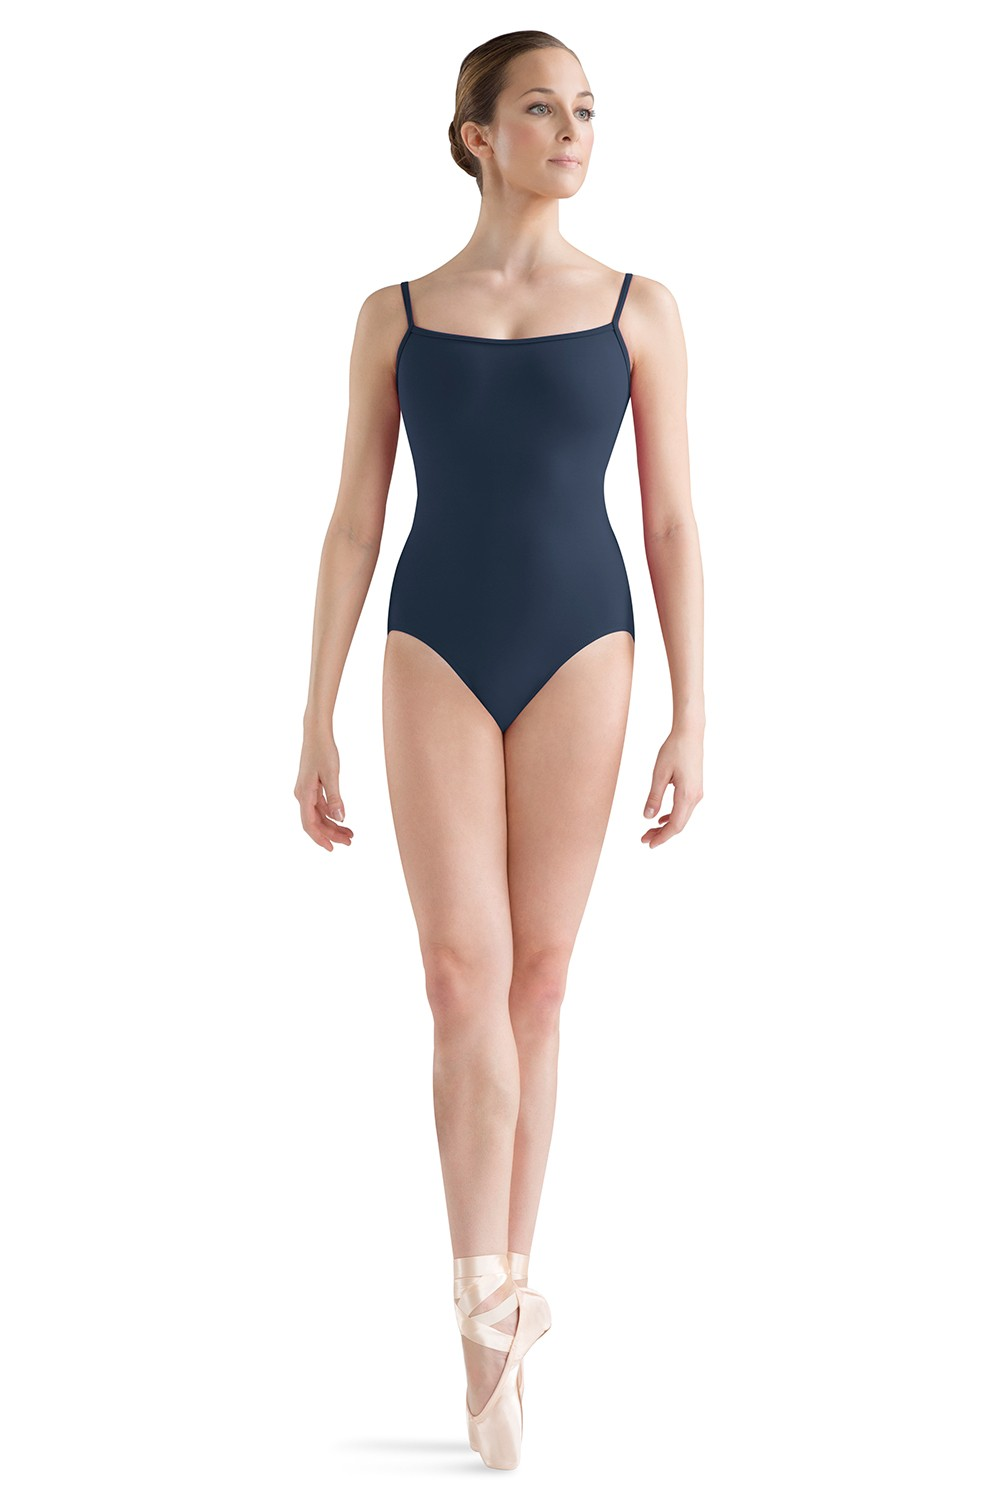 Wave Band Back Cami Women's Dance Leotards